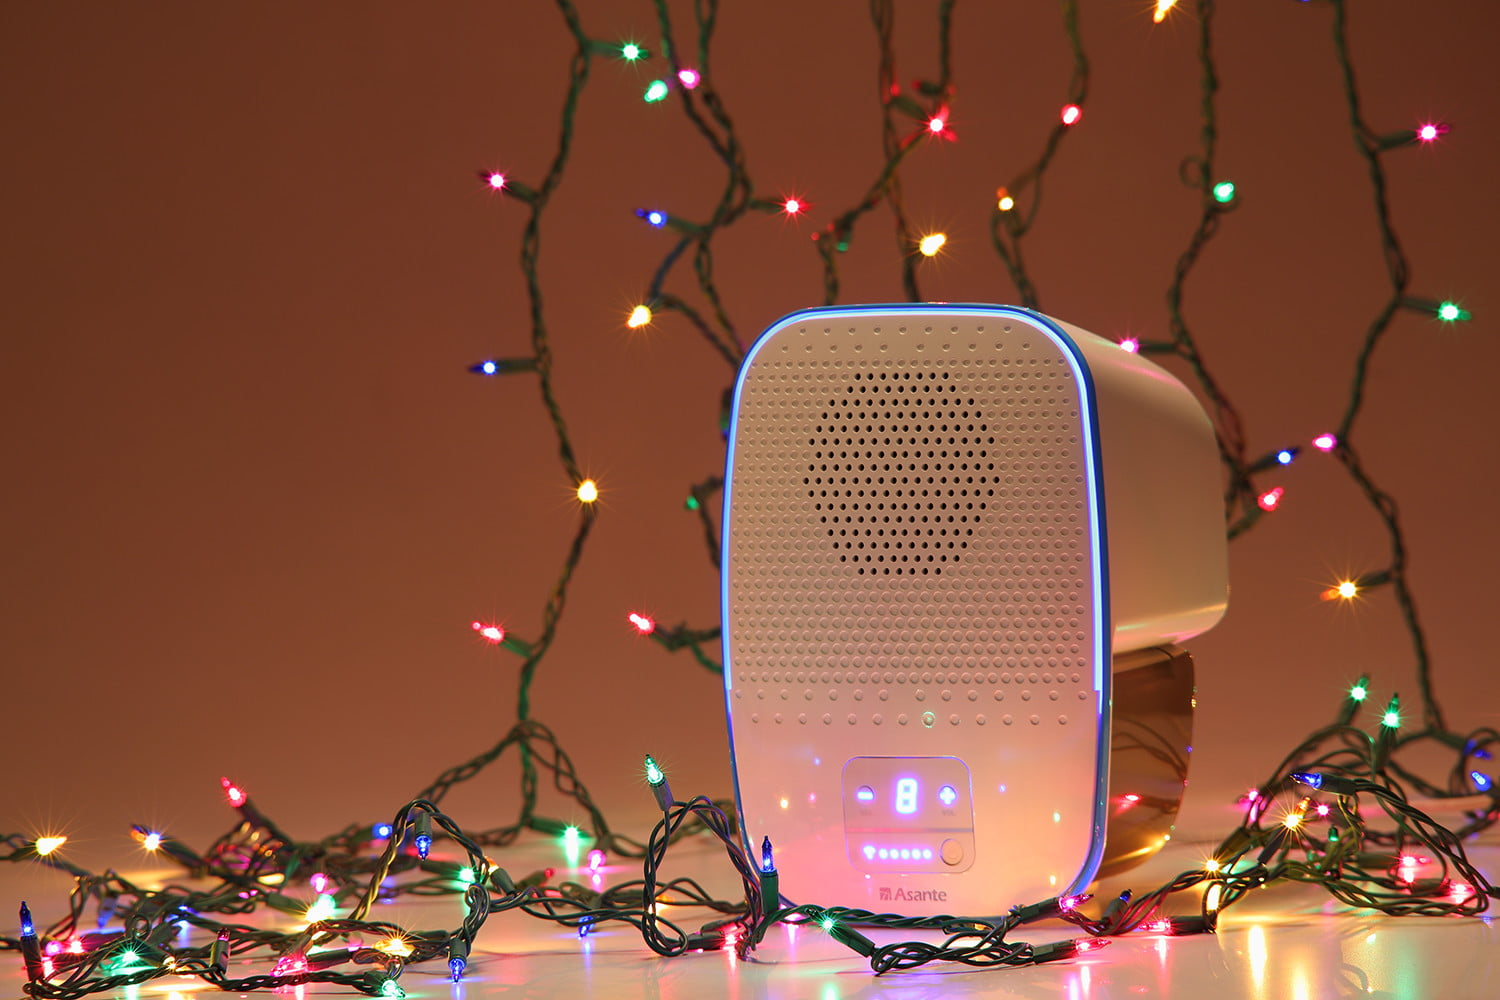 Taptap Makes Music Timed Christmas Light Shows Easy Digital Trends Iluxx Lighting Support